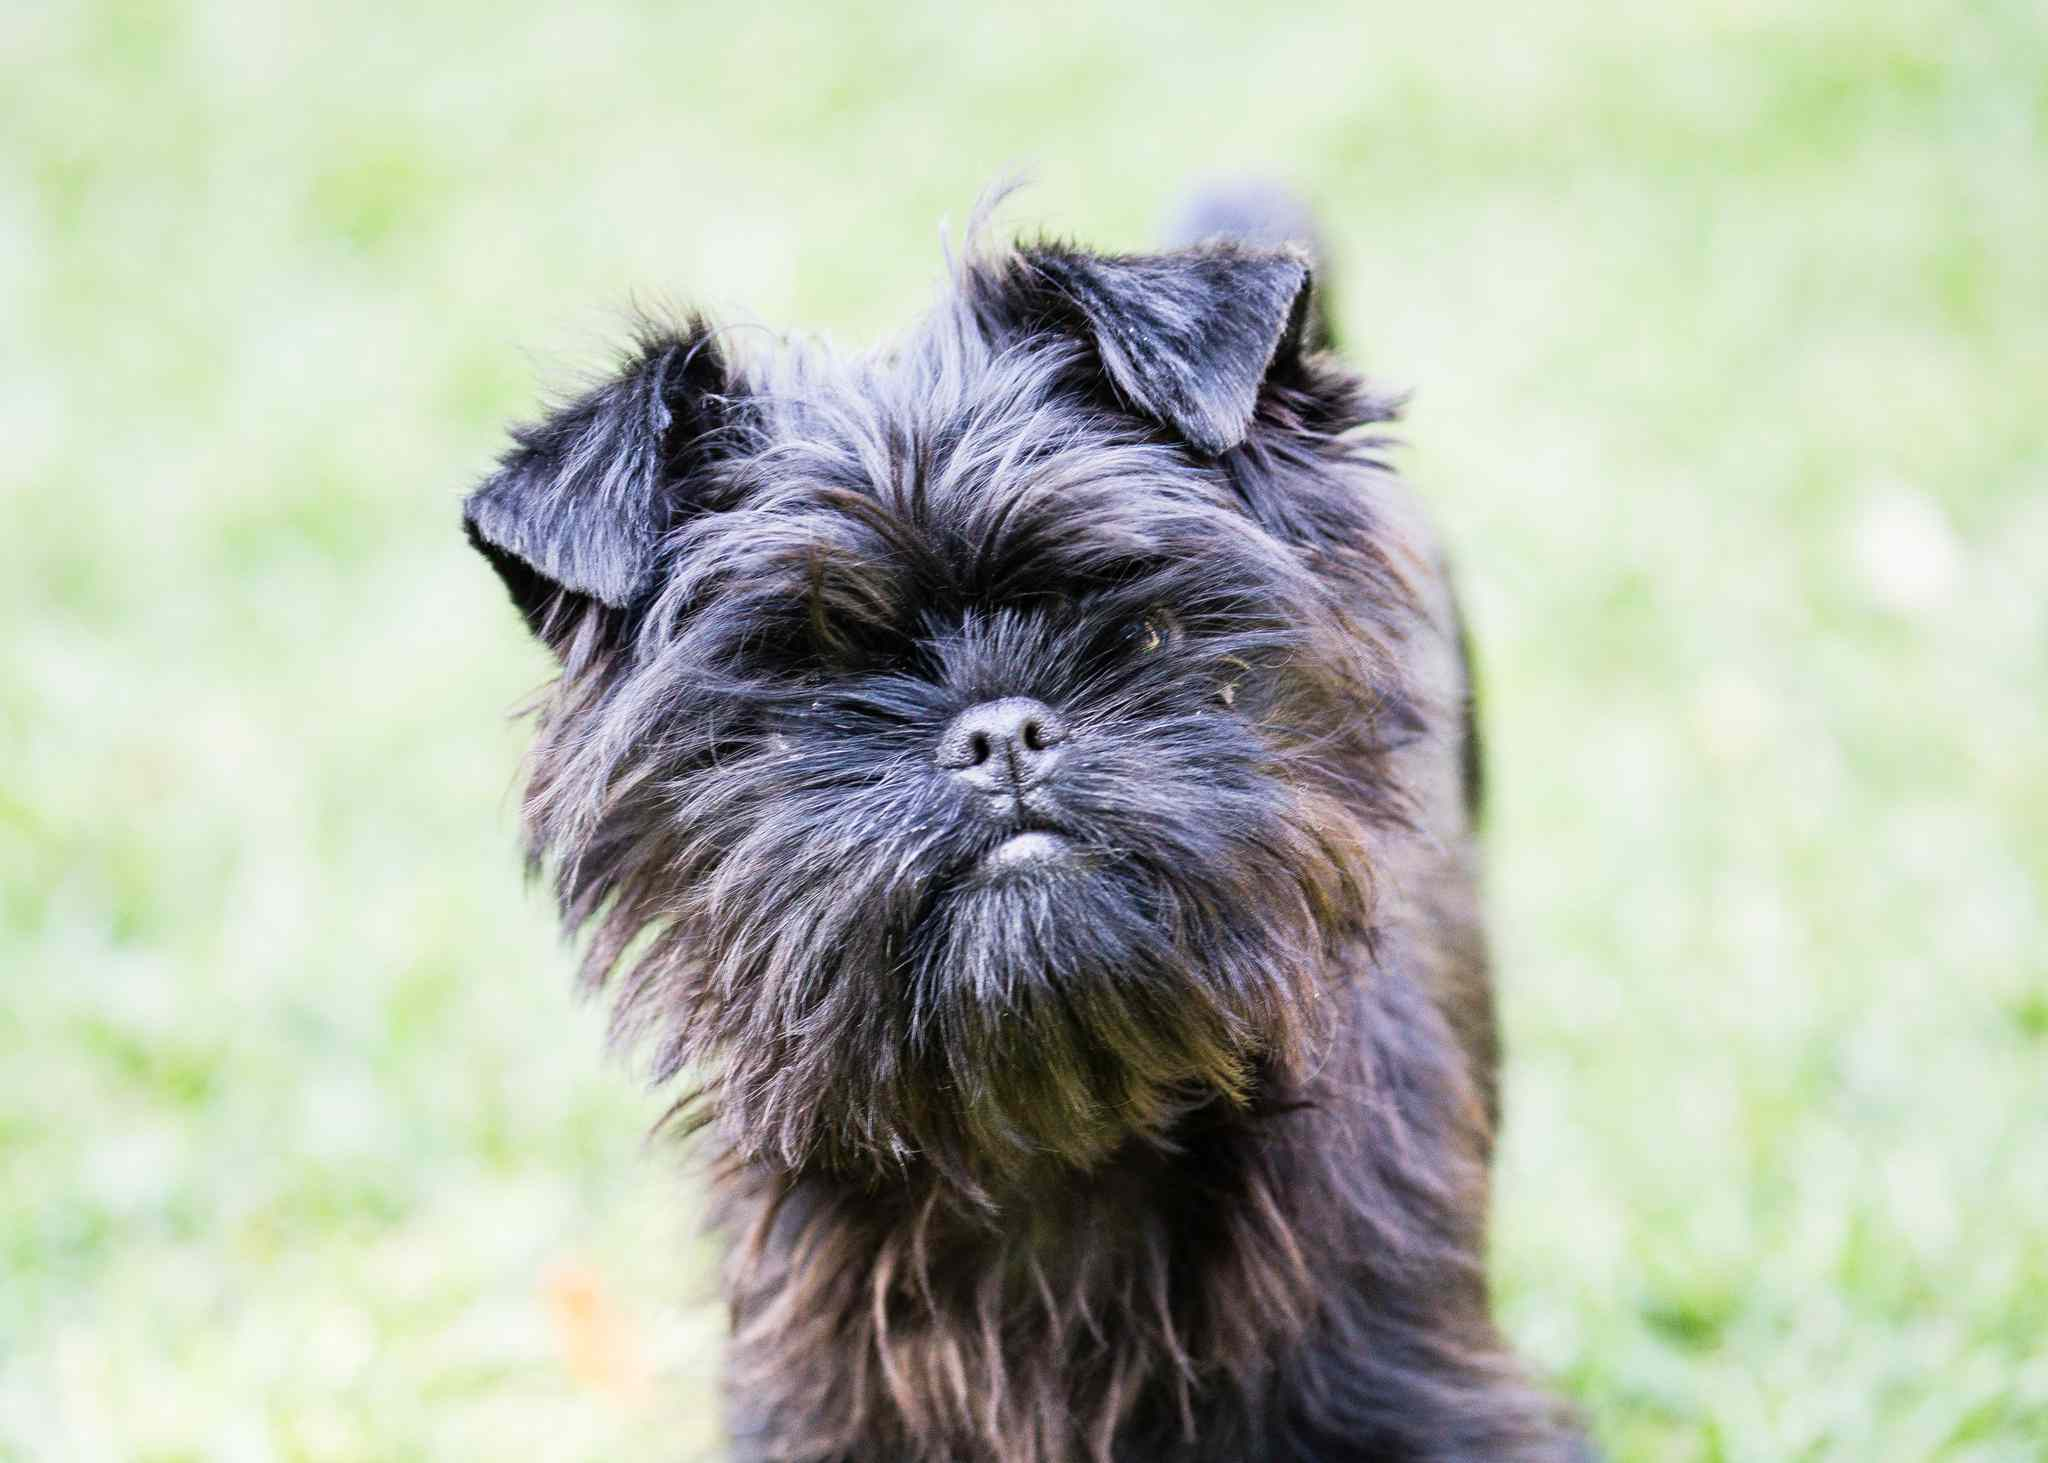 A small, black terrier dog looking at the camera.